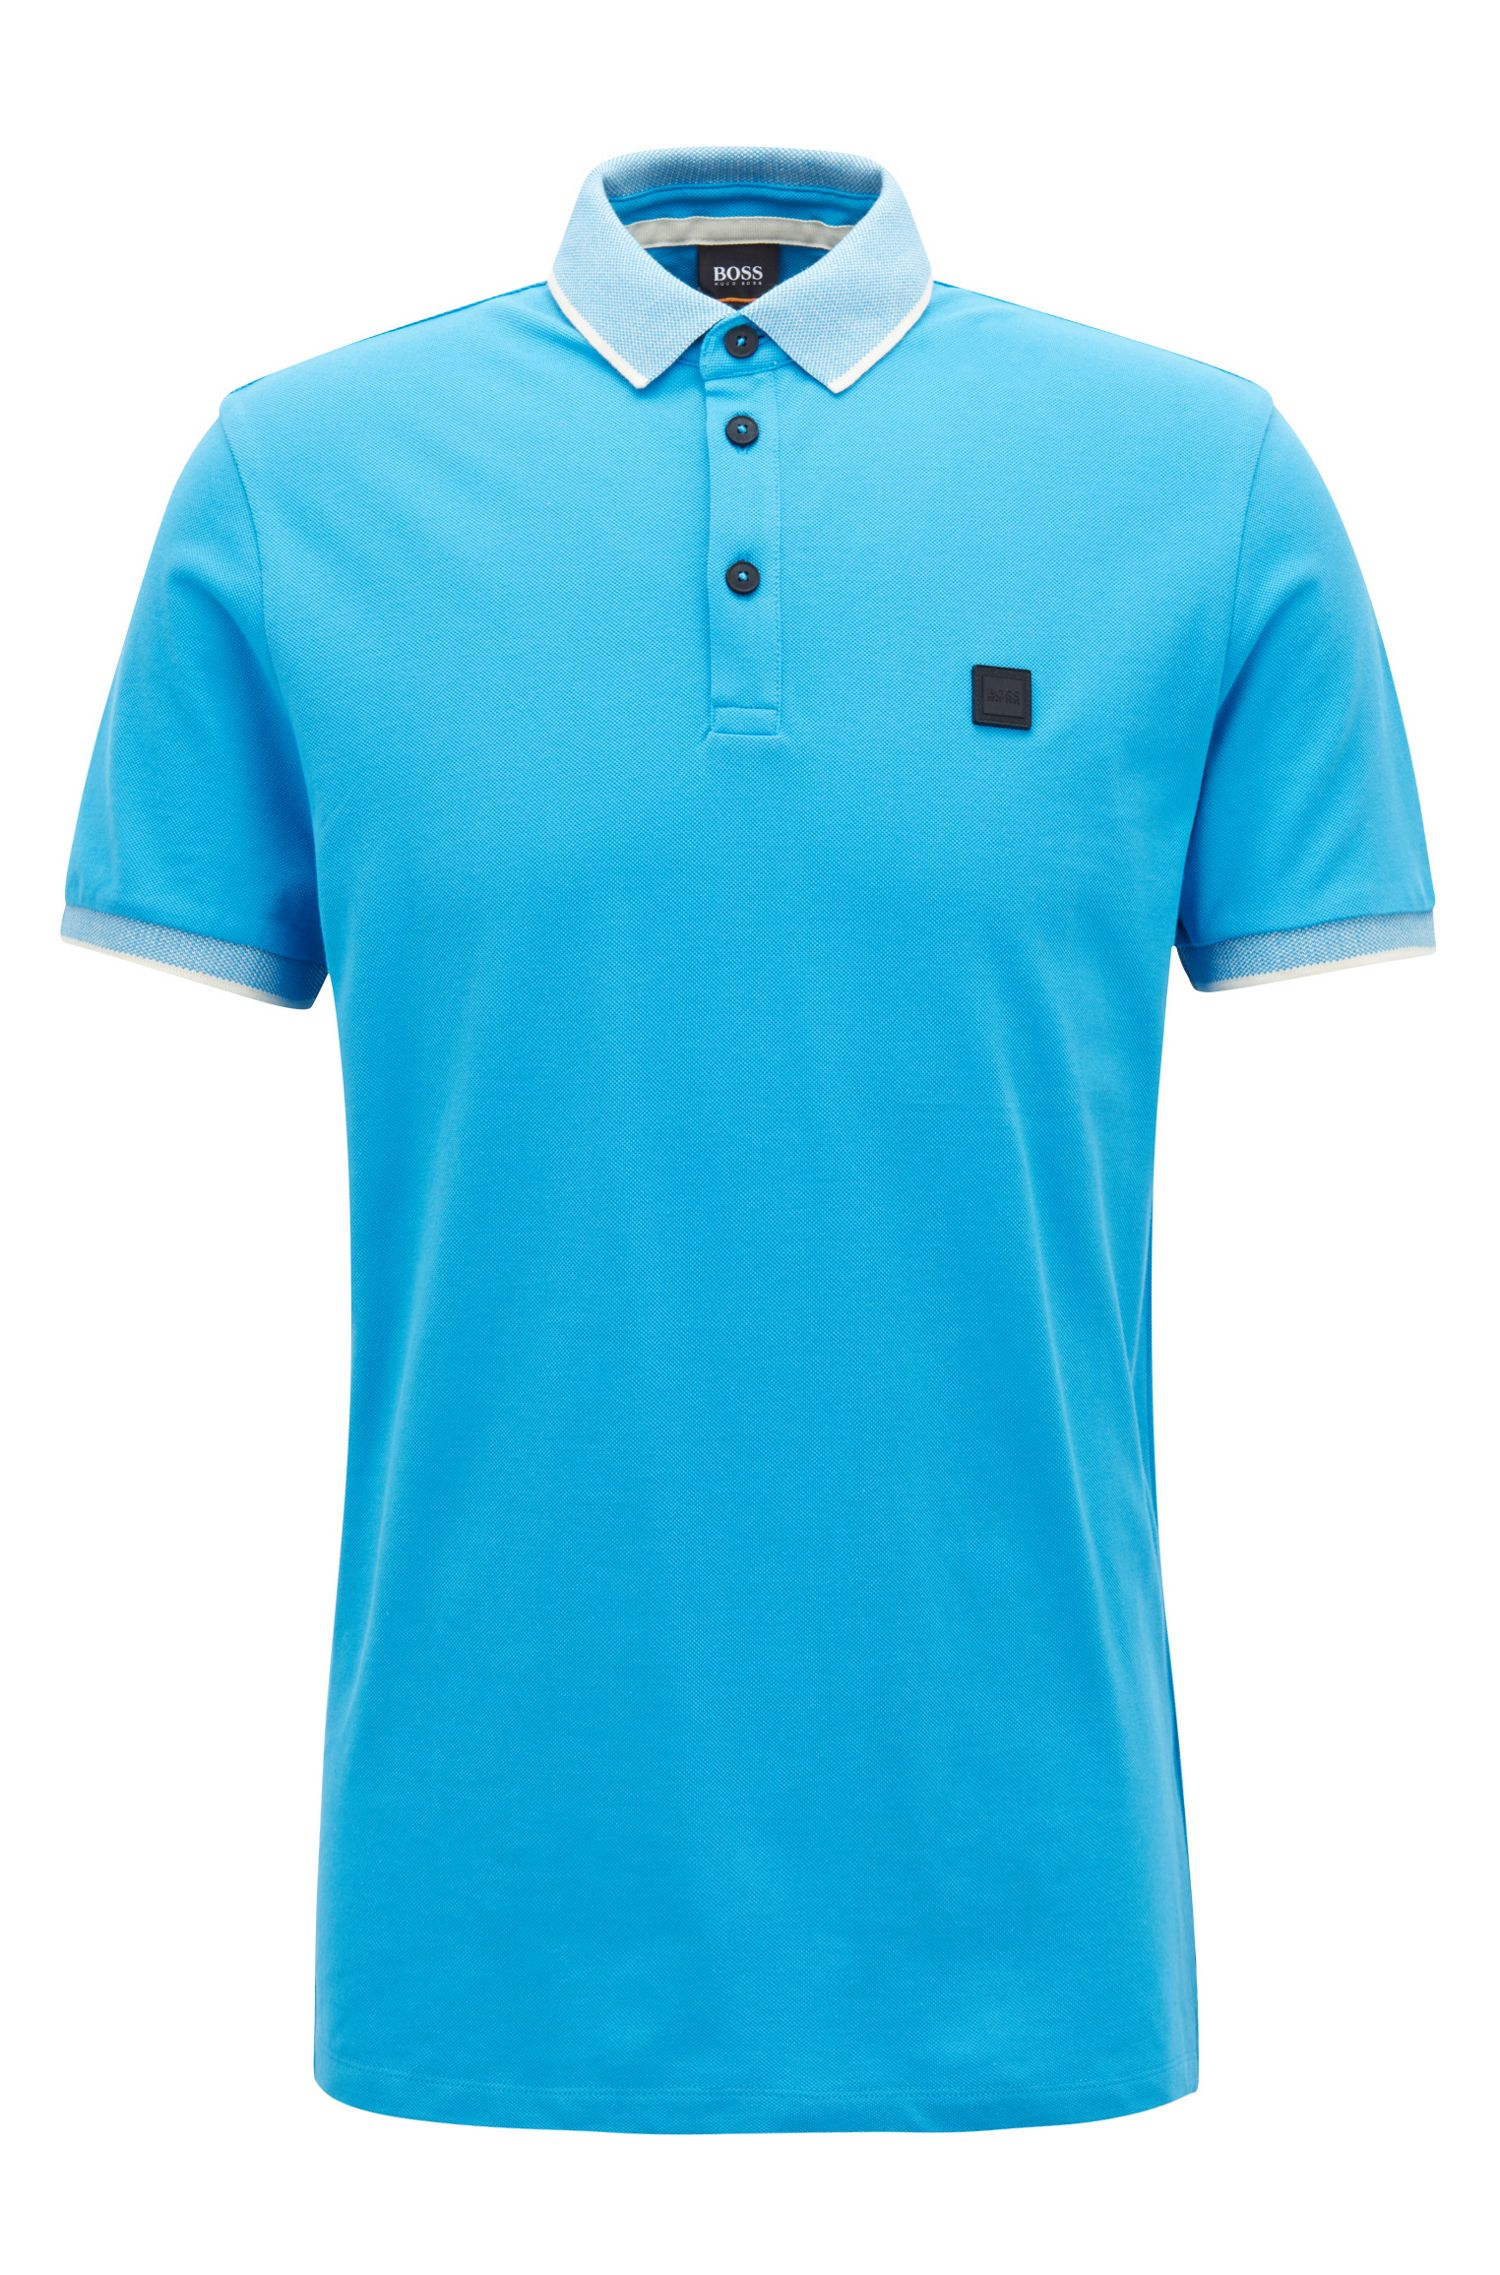 Polo Relaxed Fit rehaussé de liserés contrastants, Bleu vif